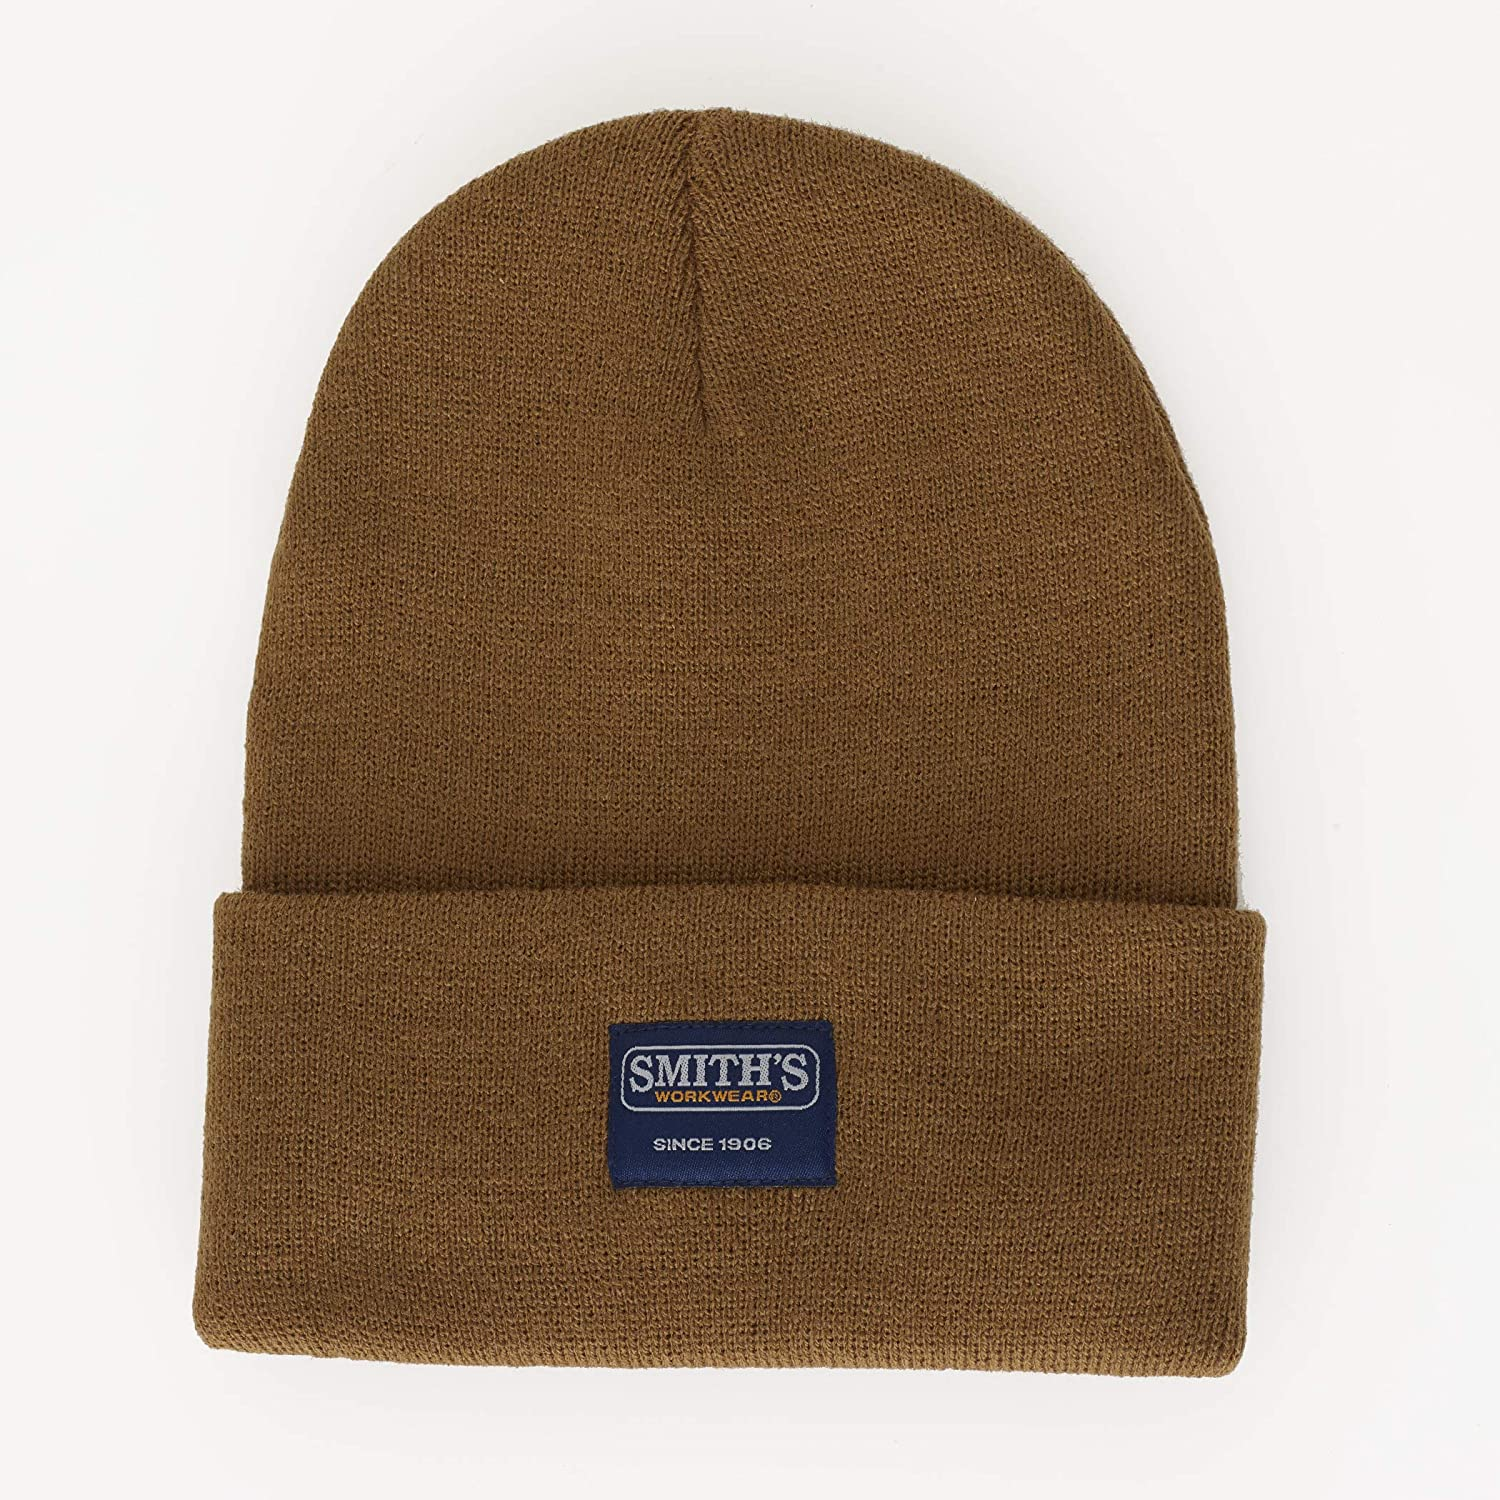 Smiths Workwear Mens Pull-on Knit Hat